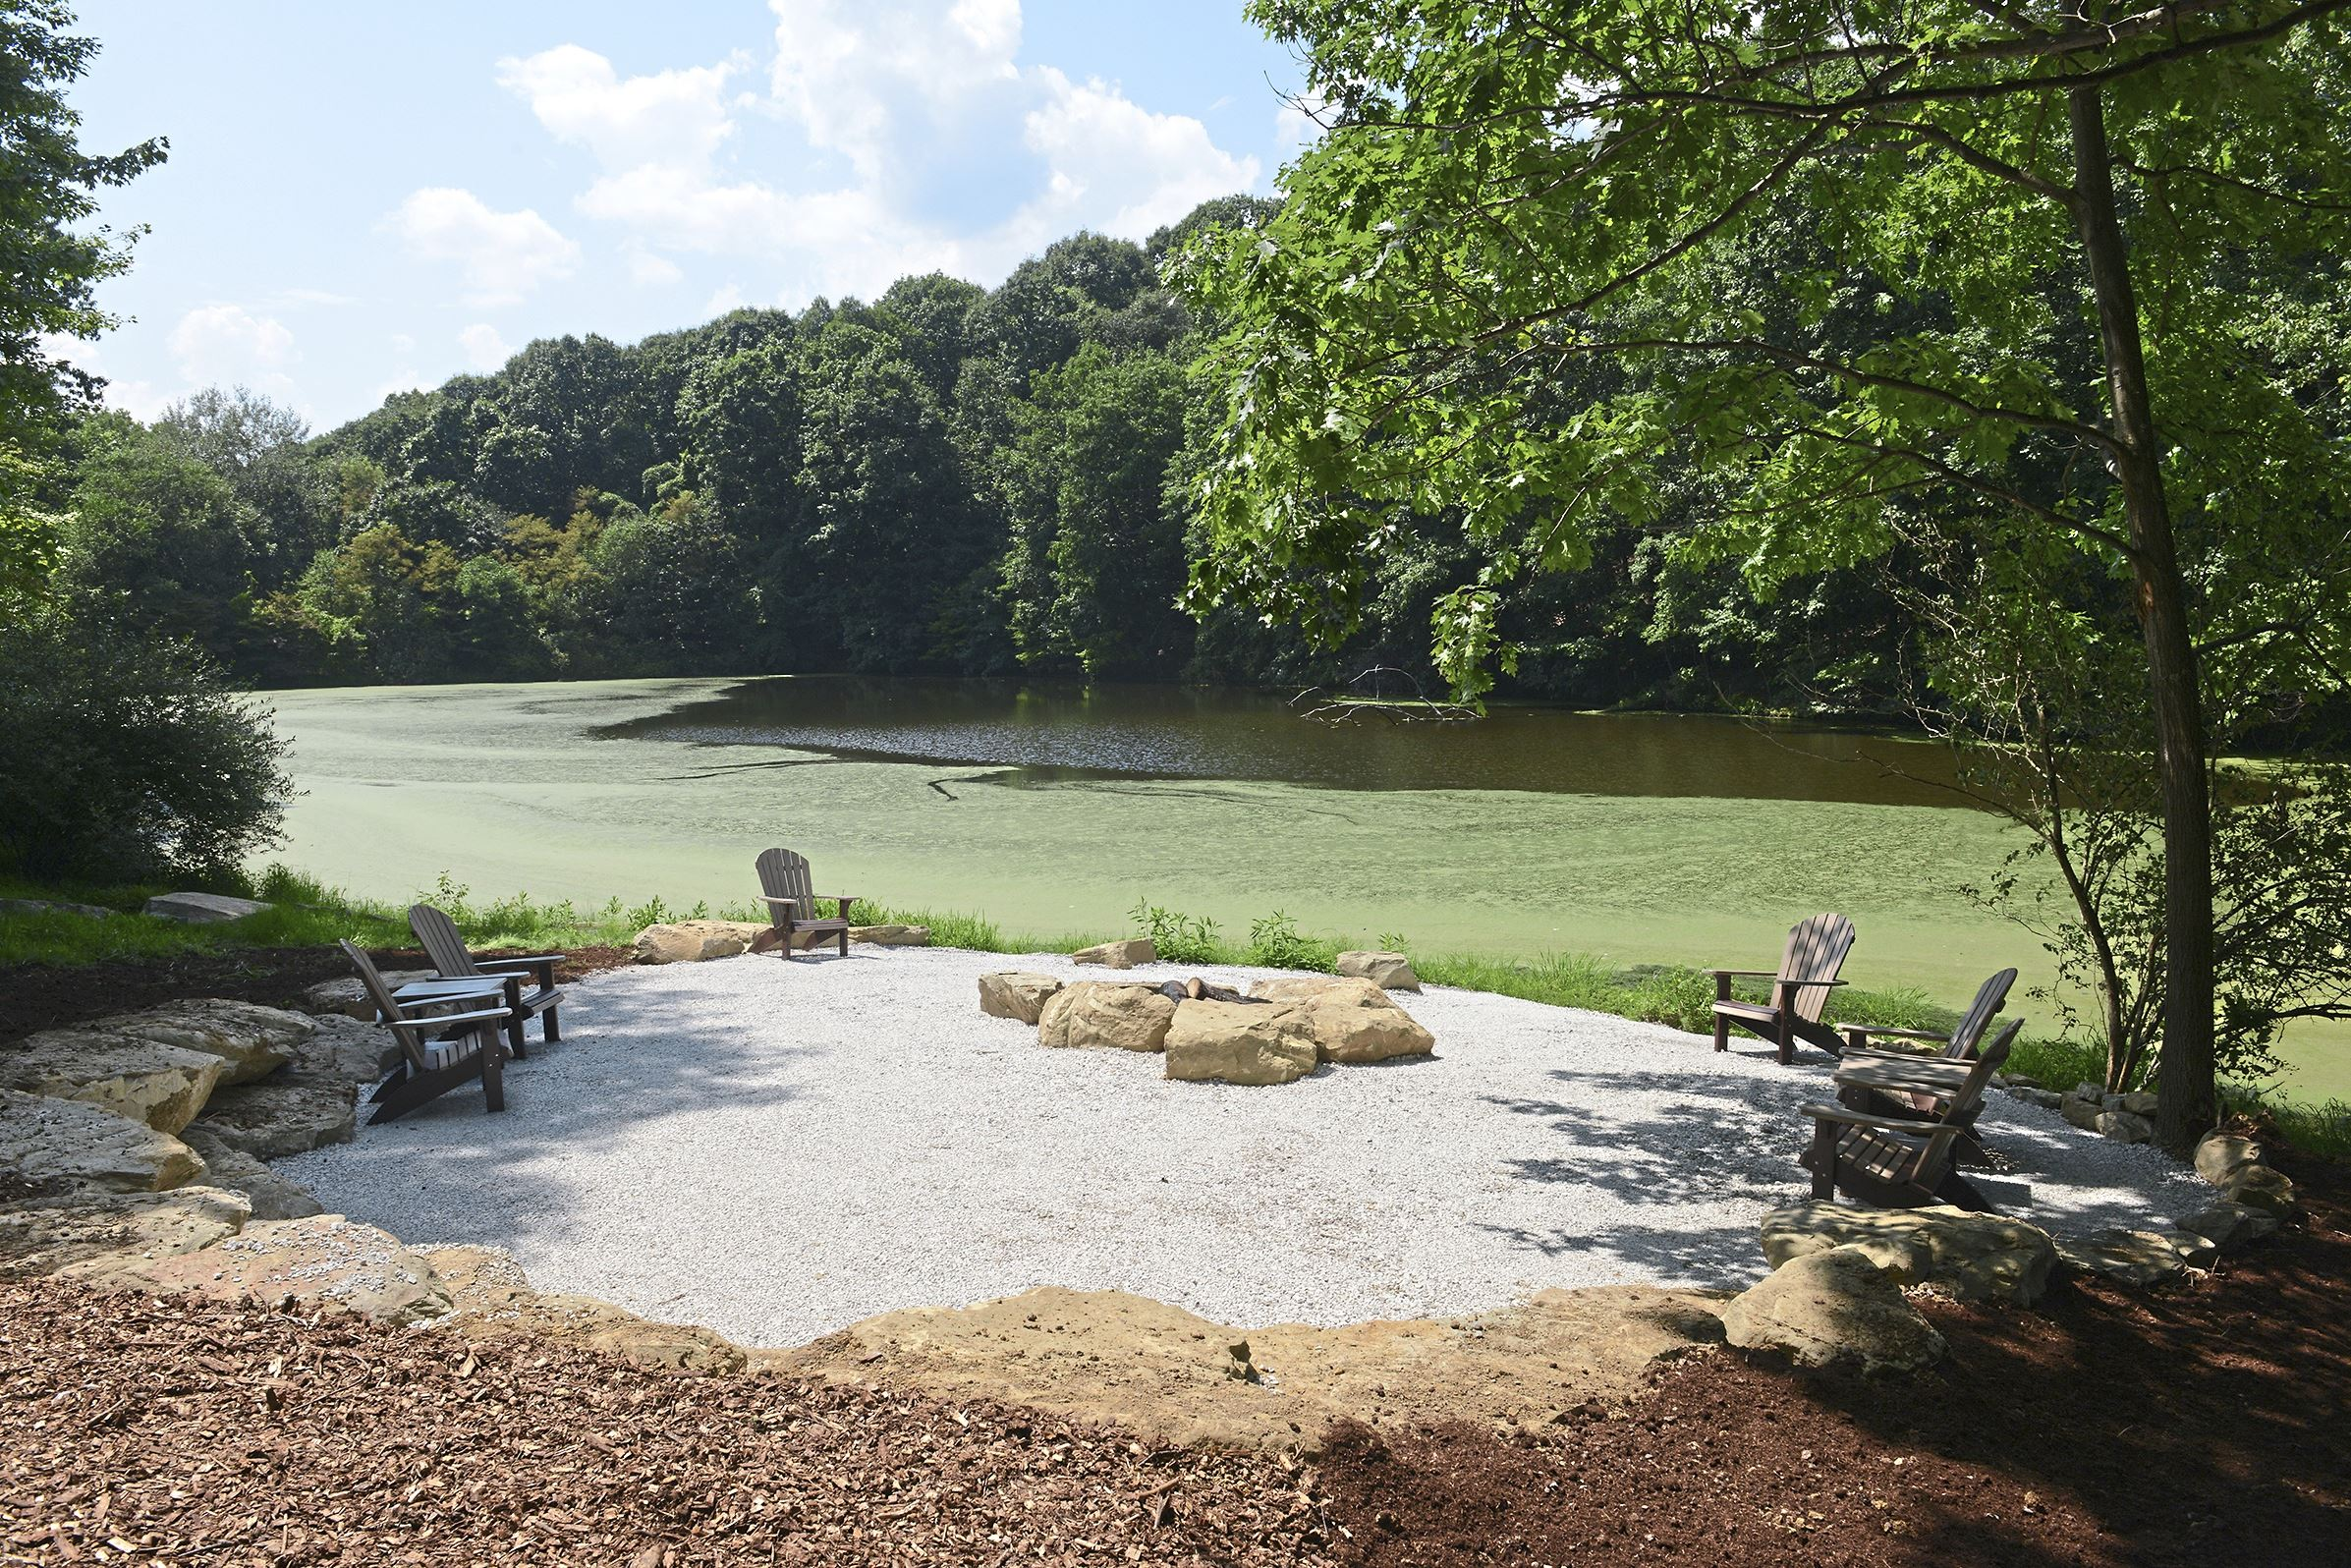 20170802lf-House05-4 The outdoor picnic area with a pond for fishing of Pinnacle at Adams in Adams Township